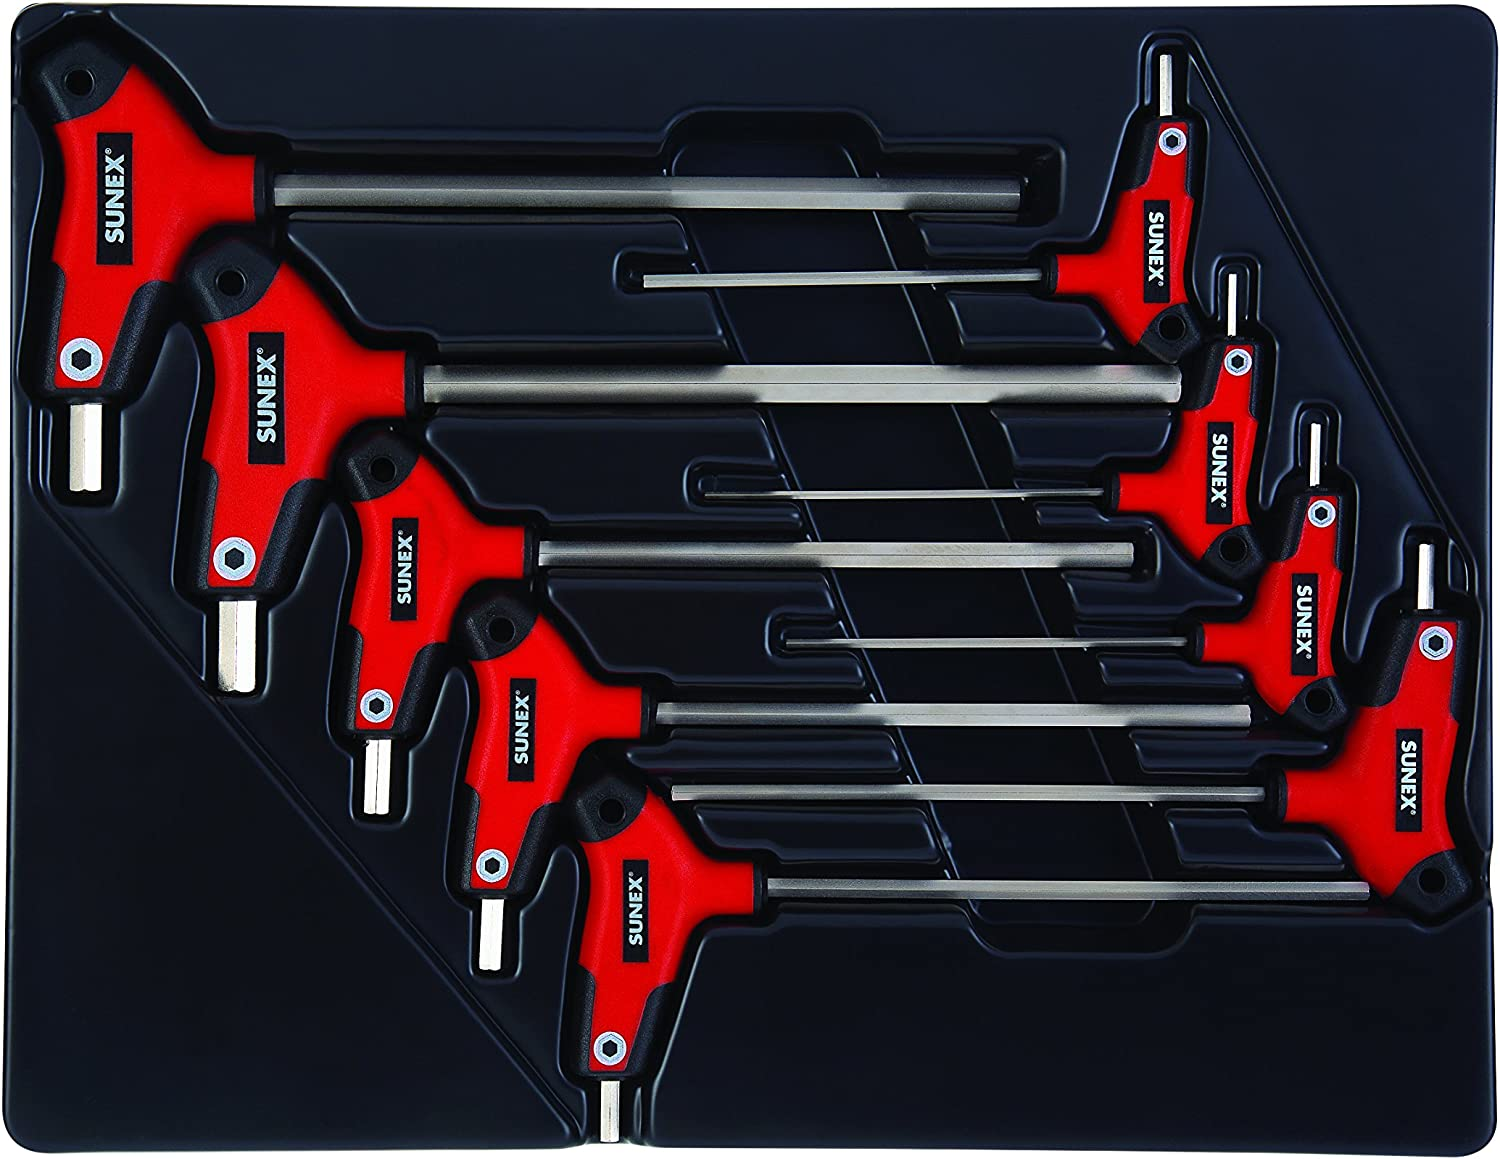 Star Hex Key Set Storage Tray Sunex Tools Rubber Overmolded Handle 7Piece T10 to T40 Sunex 9857T Comfort Grip